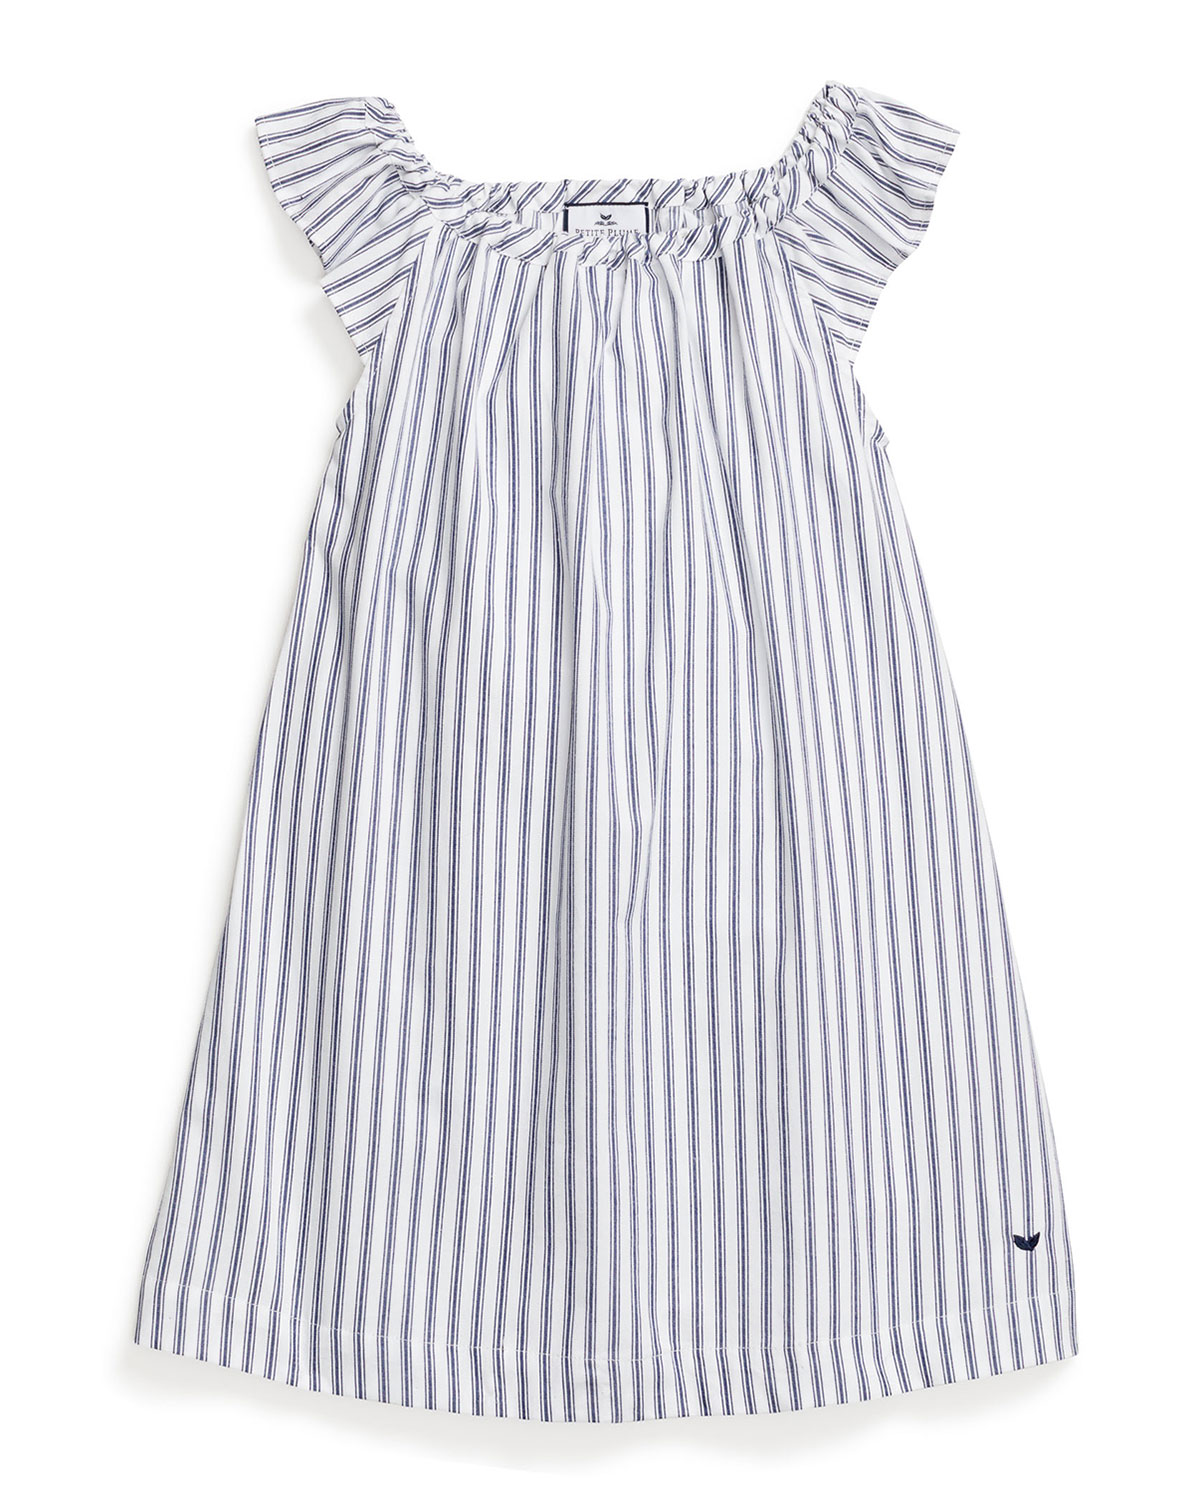 Petite Plume KID'S ISABELLE FRENCH TICKING STRIPED NIGHTGOWN